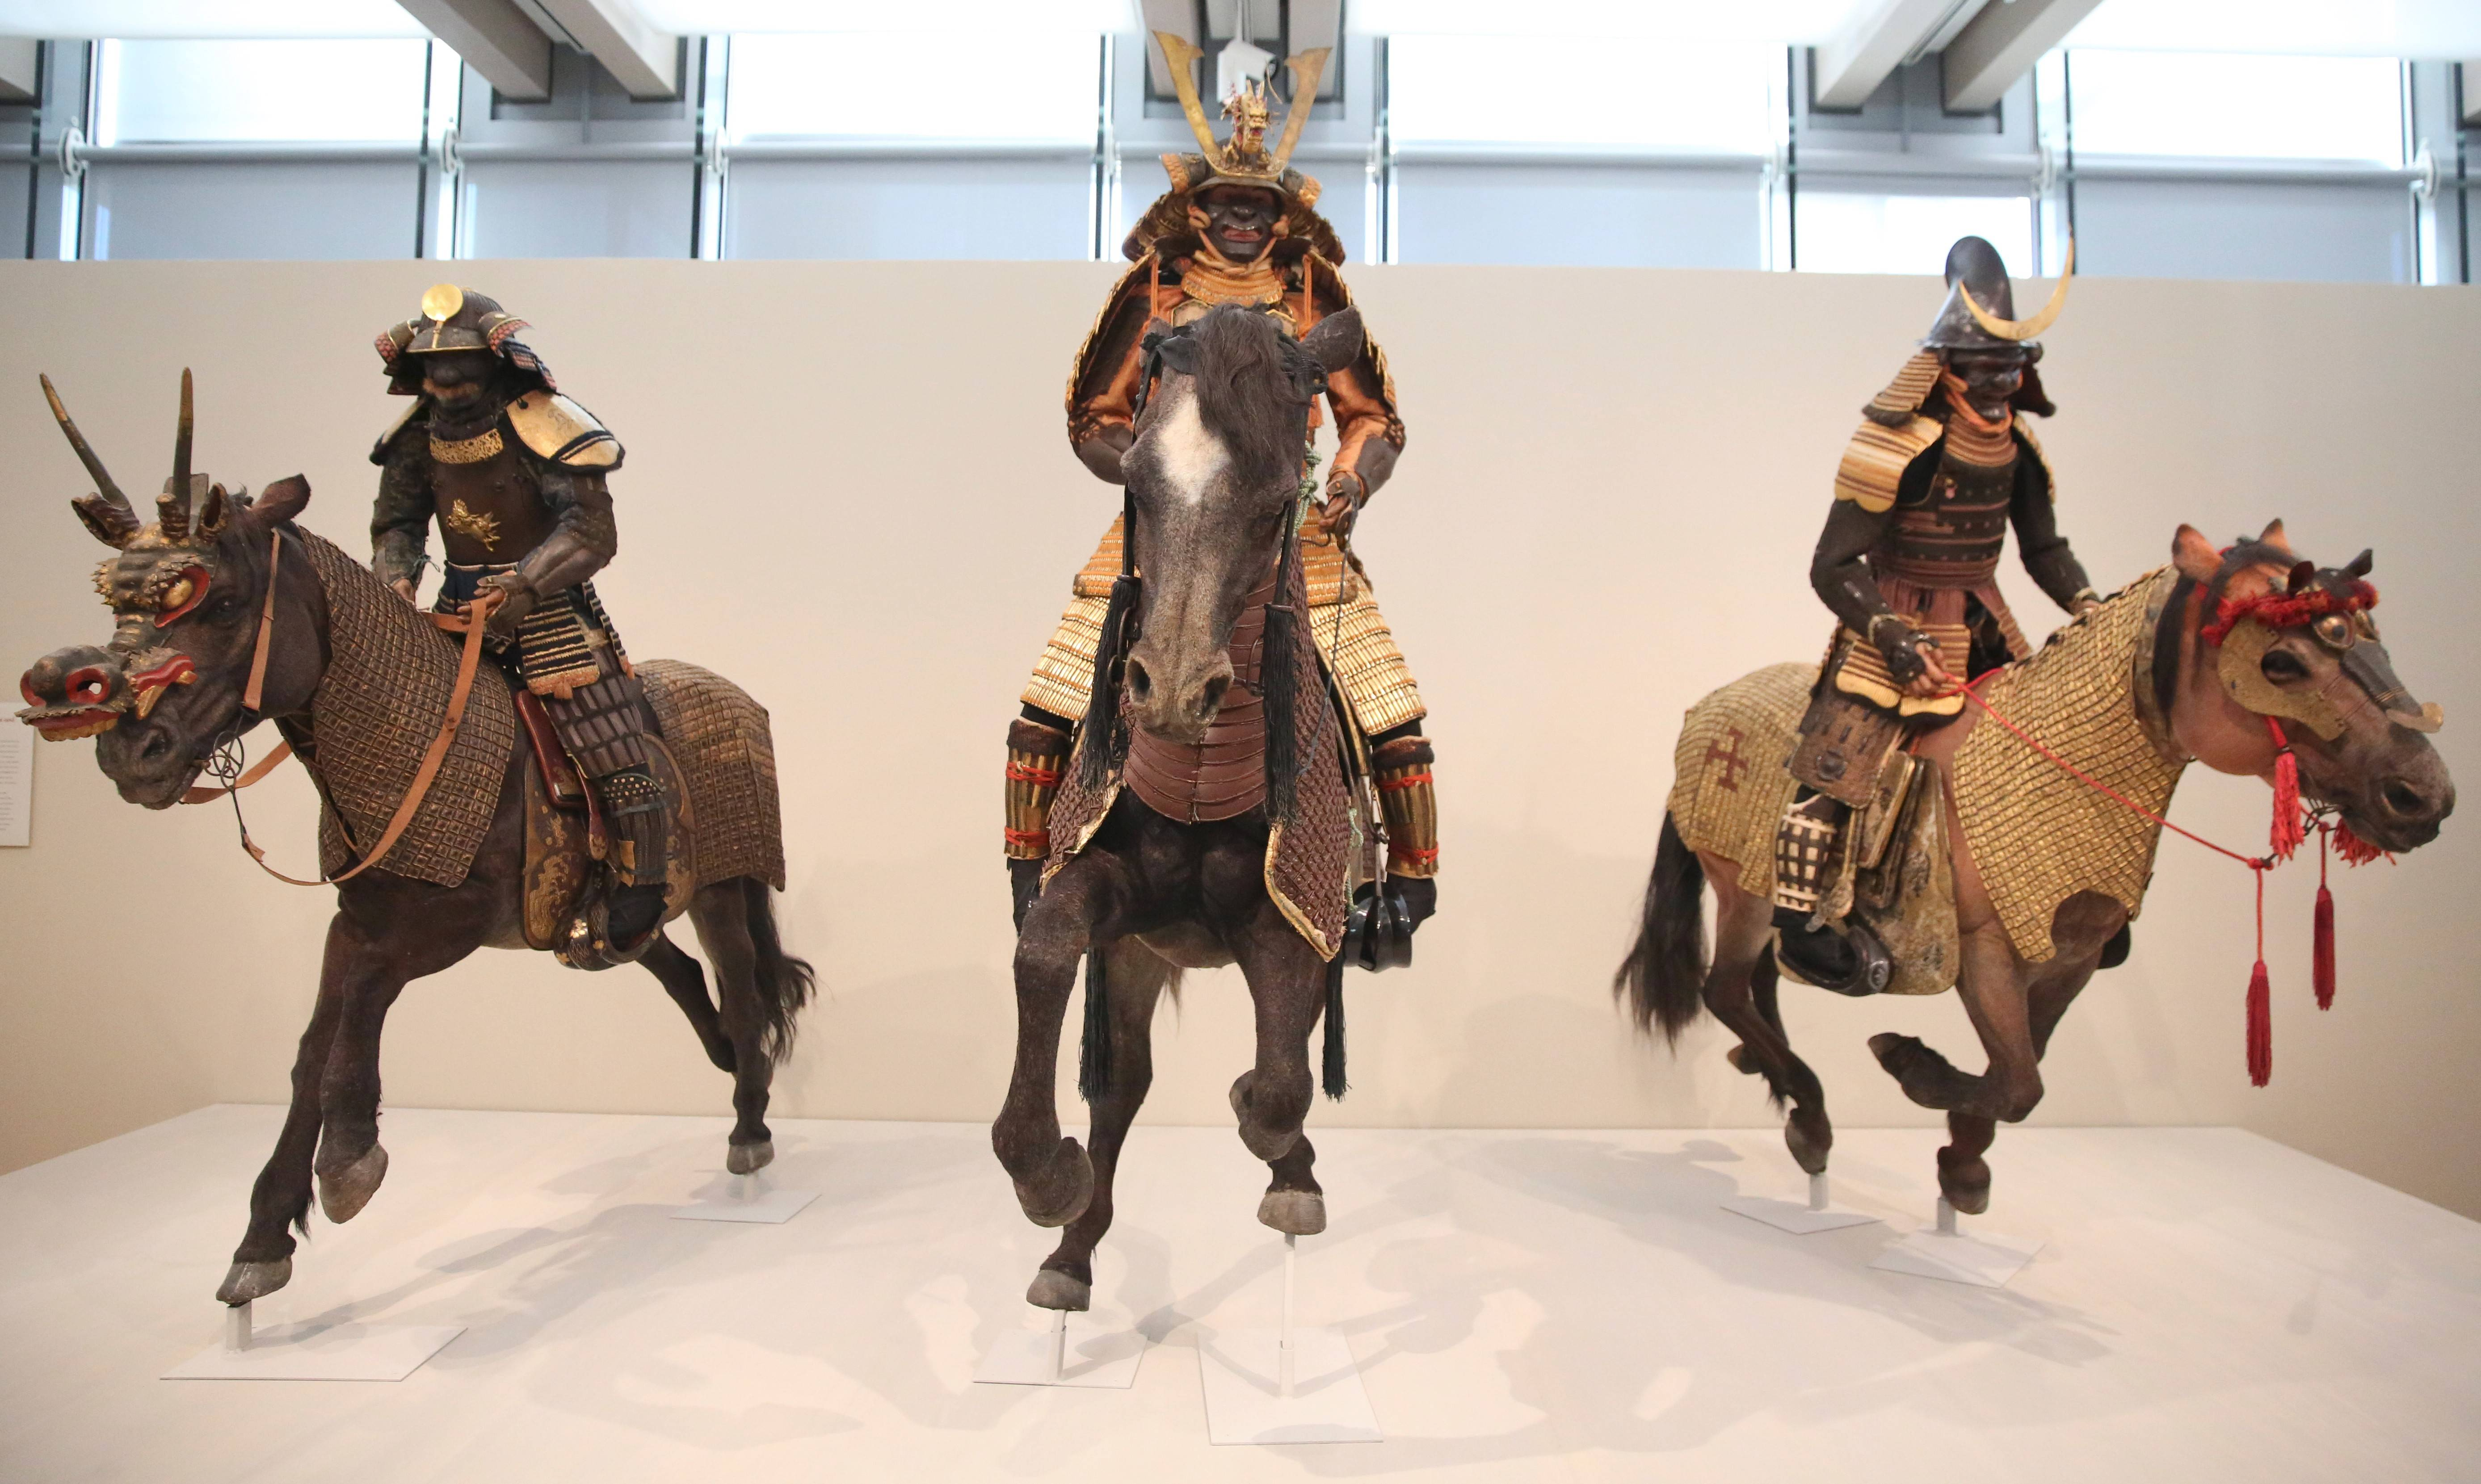 Full suits of armor for Samurai and their horses are on display at the Kimbell Art Museum in Fort Worth, Texas.